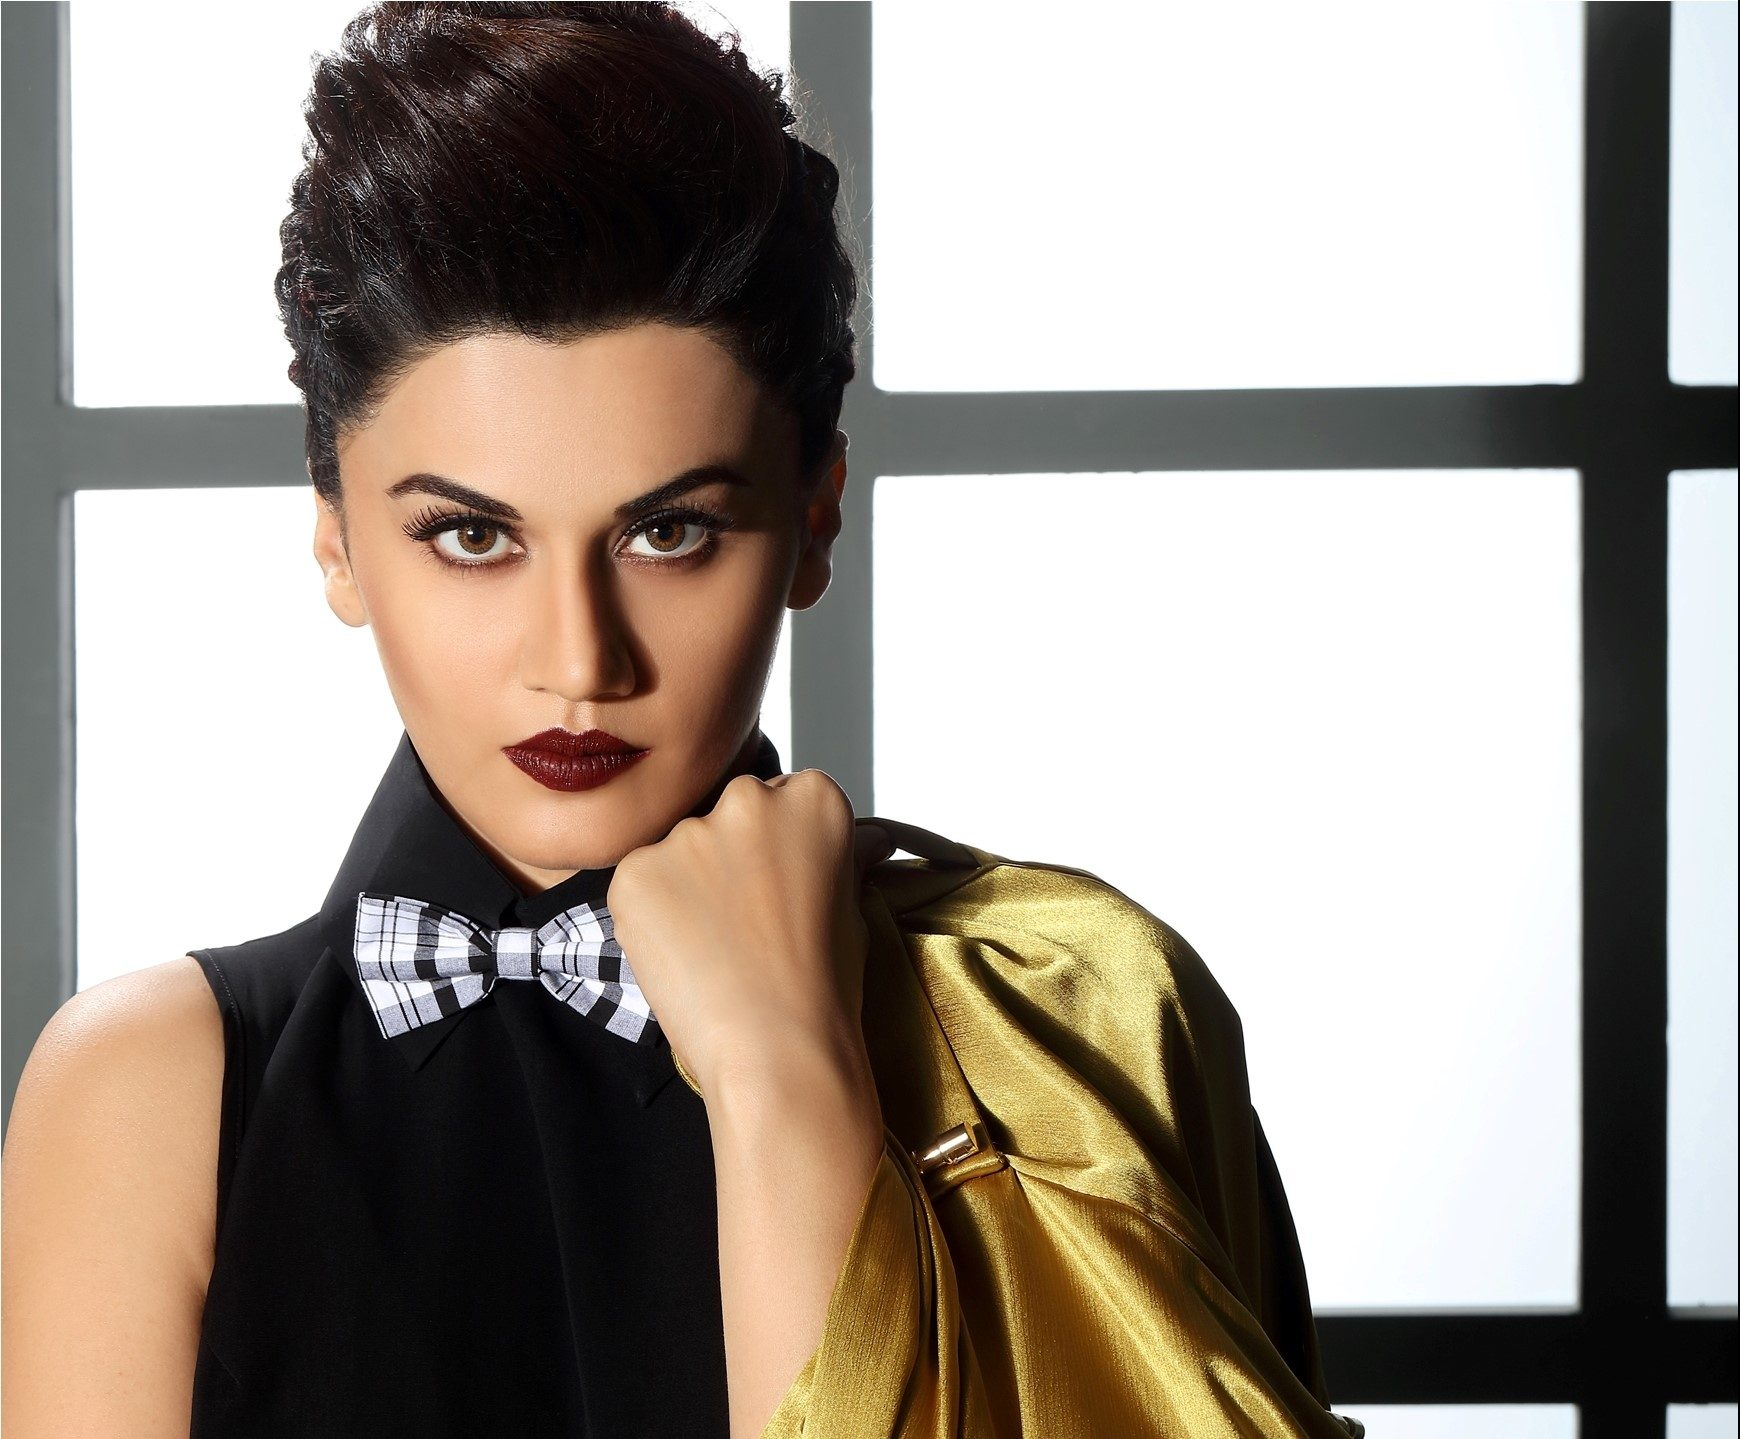 Taapsee Pannu becomes fastest growing